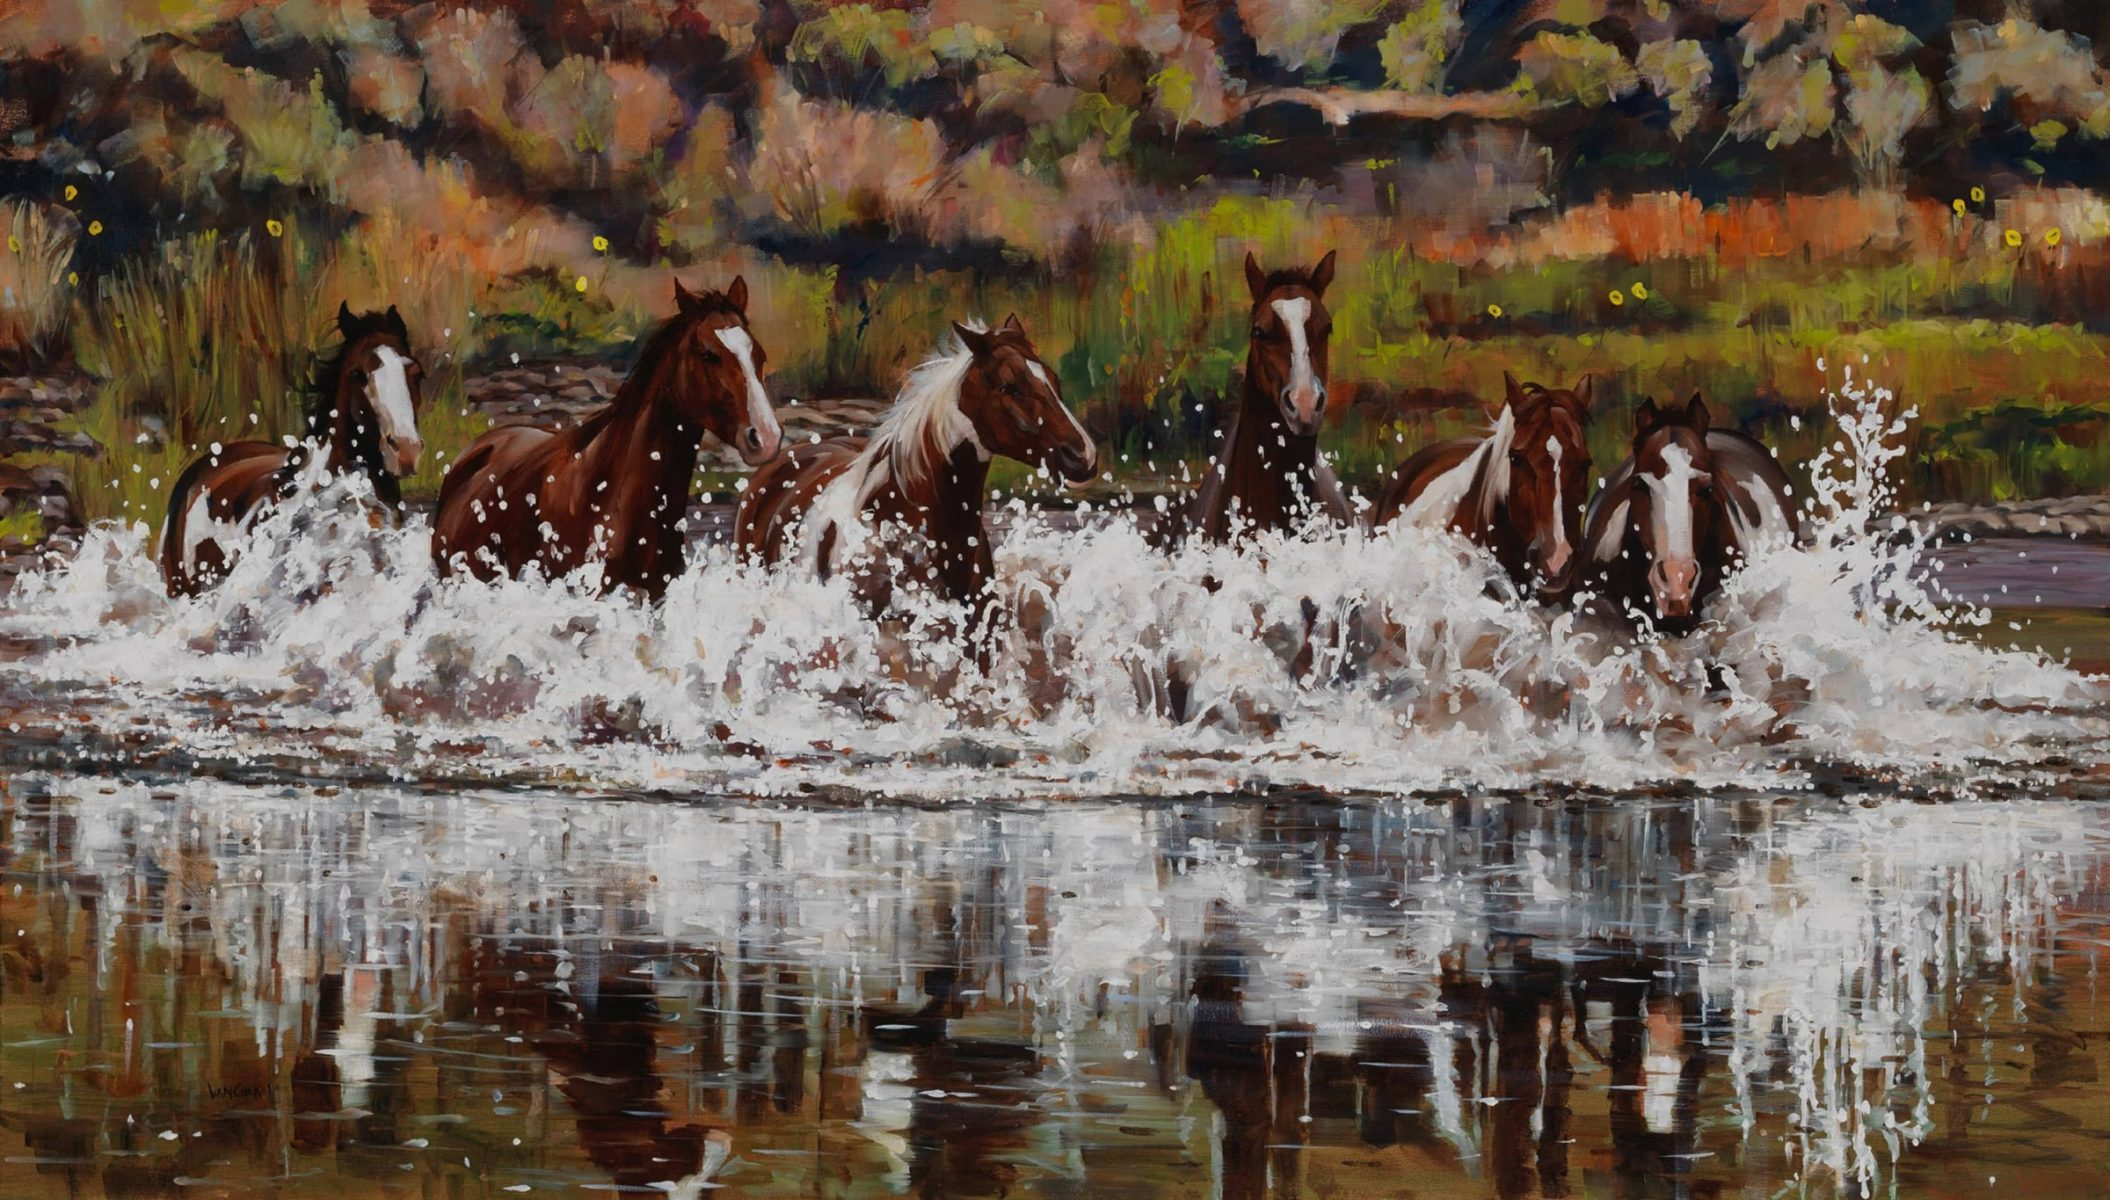 Explosive Horsepower painting by Paul Van Ginkel